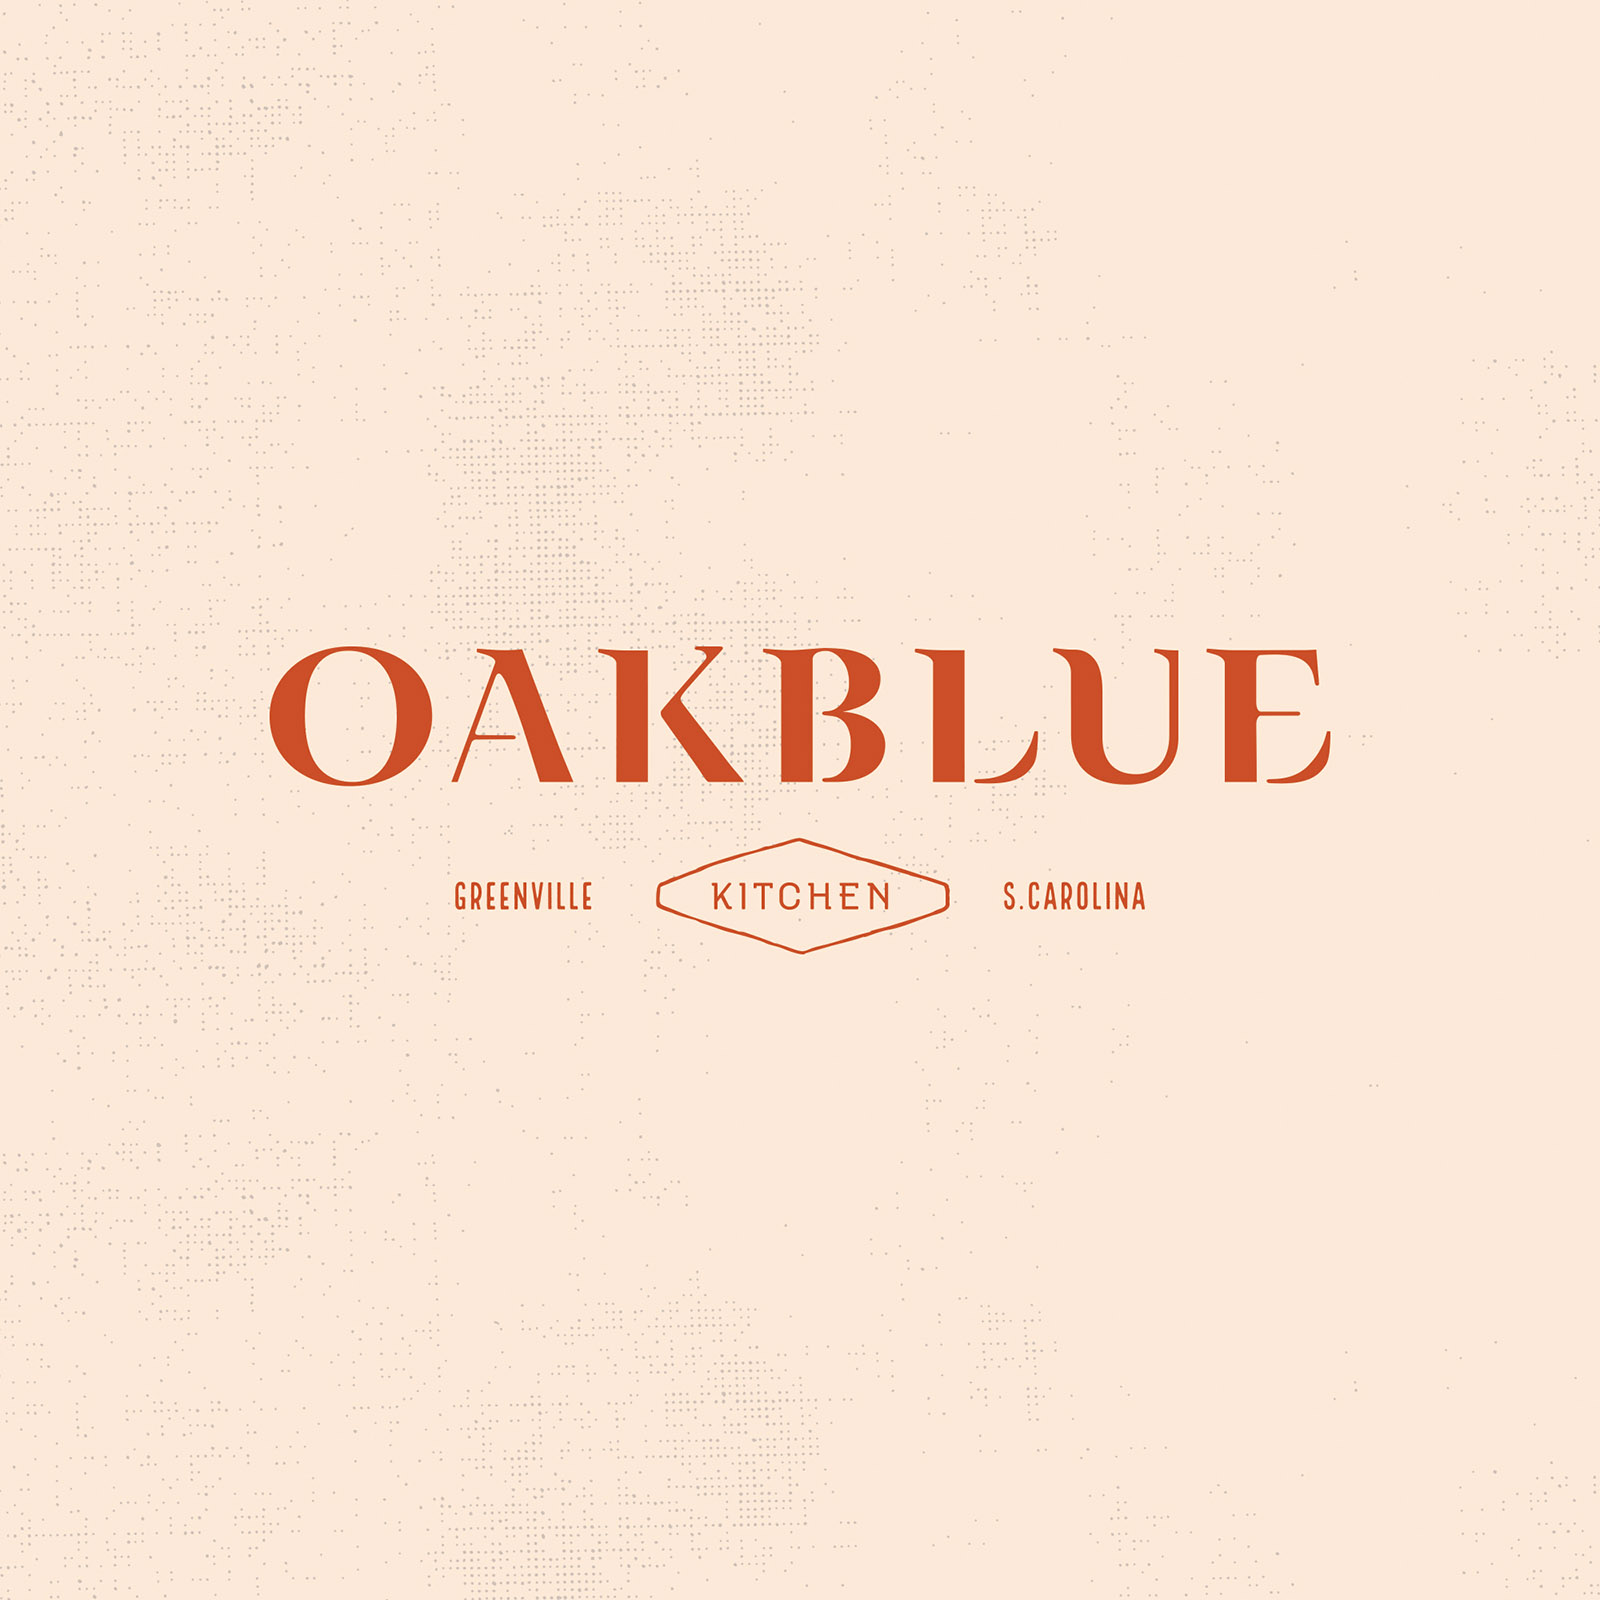 Full color Oakblue Kitchen logo design in red on tan background.